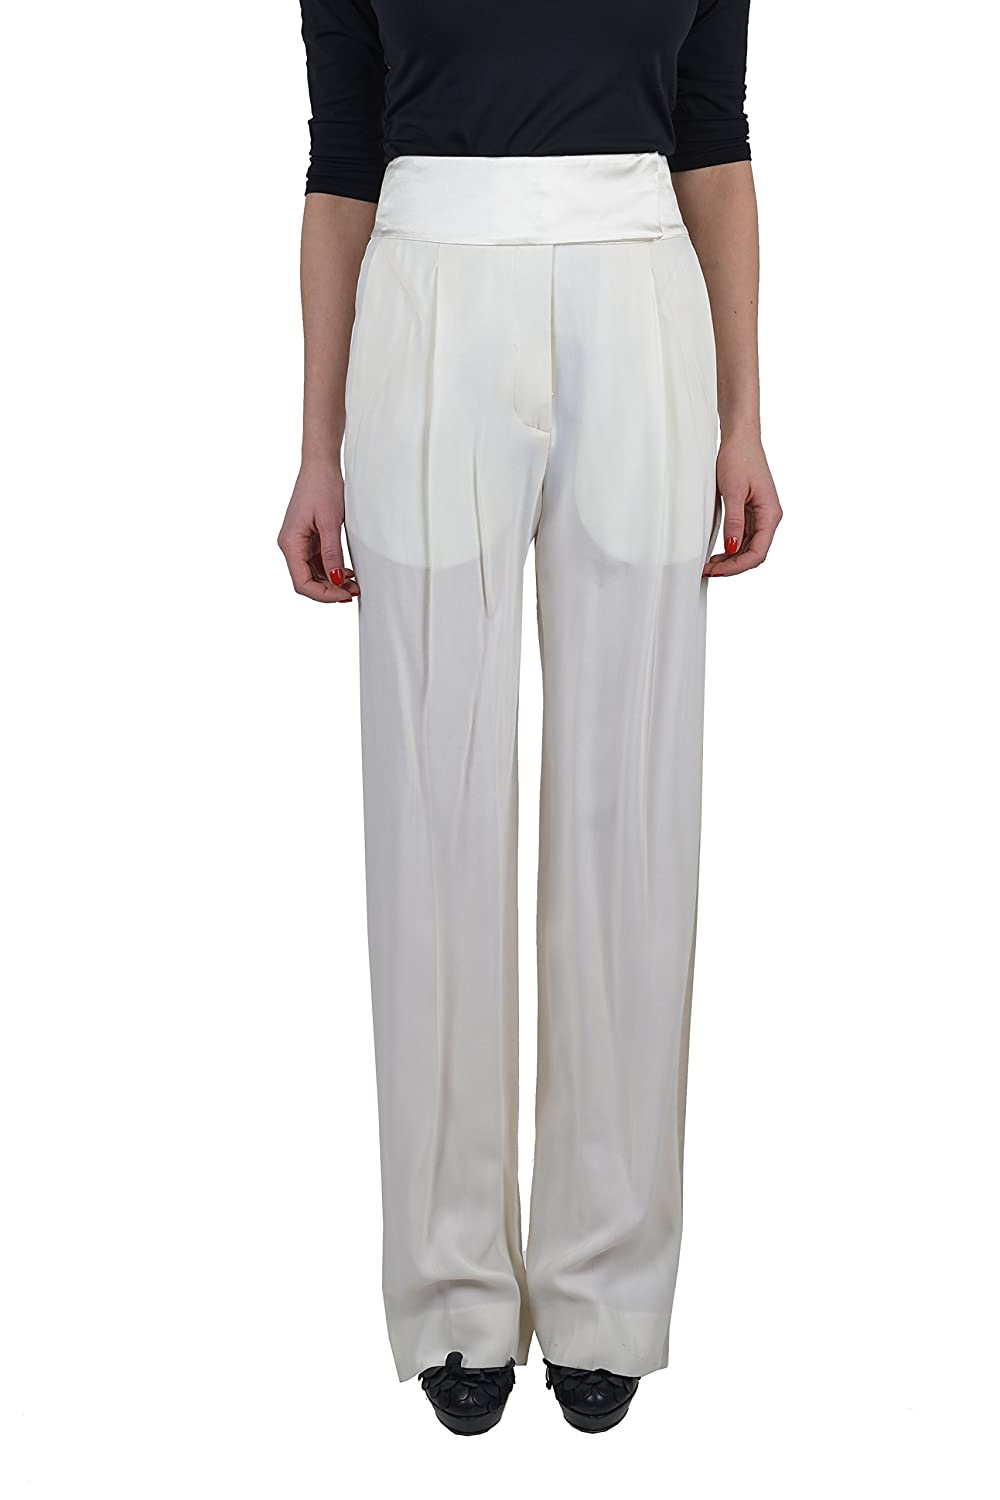 "Maison Martin Margiela ""Eased Shape"" Women's White Pleated Wool Pants US 4 IT 40"